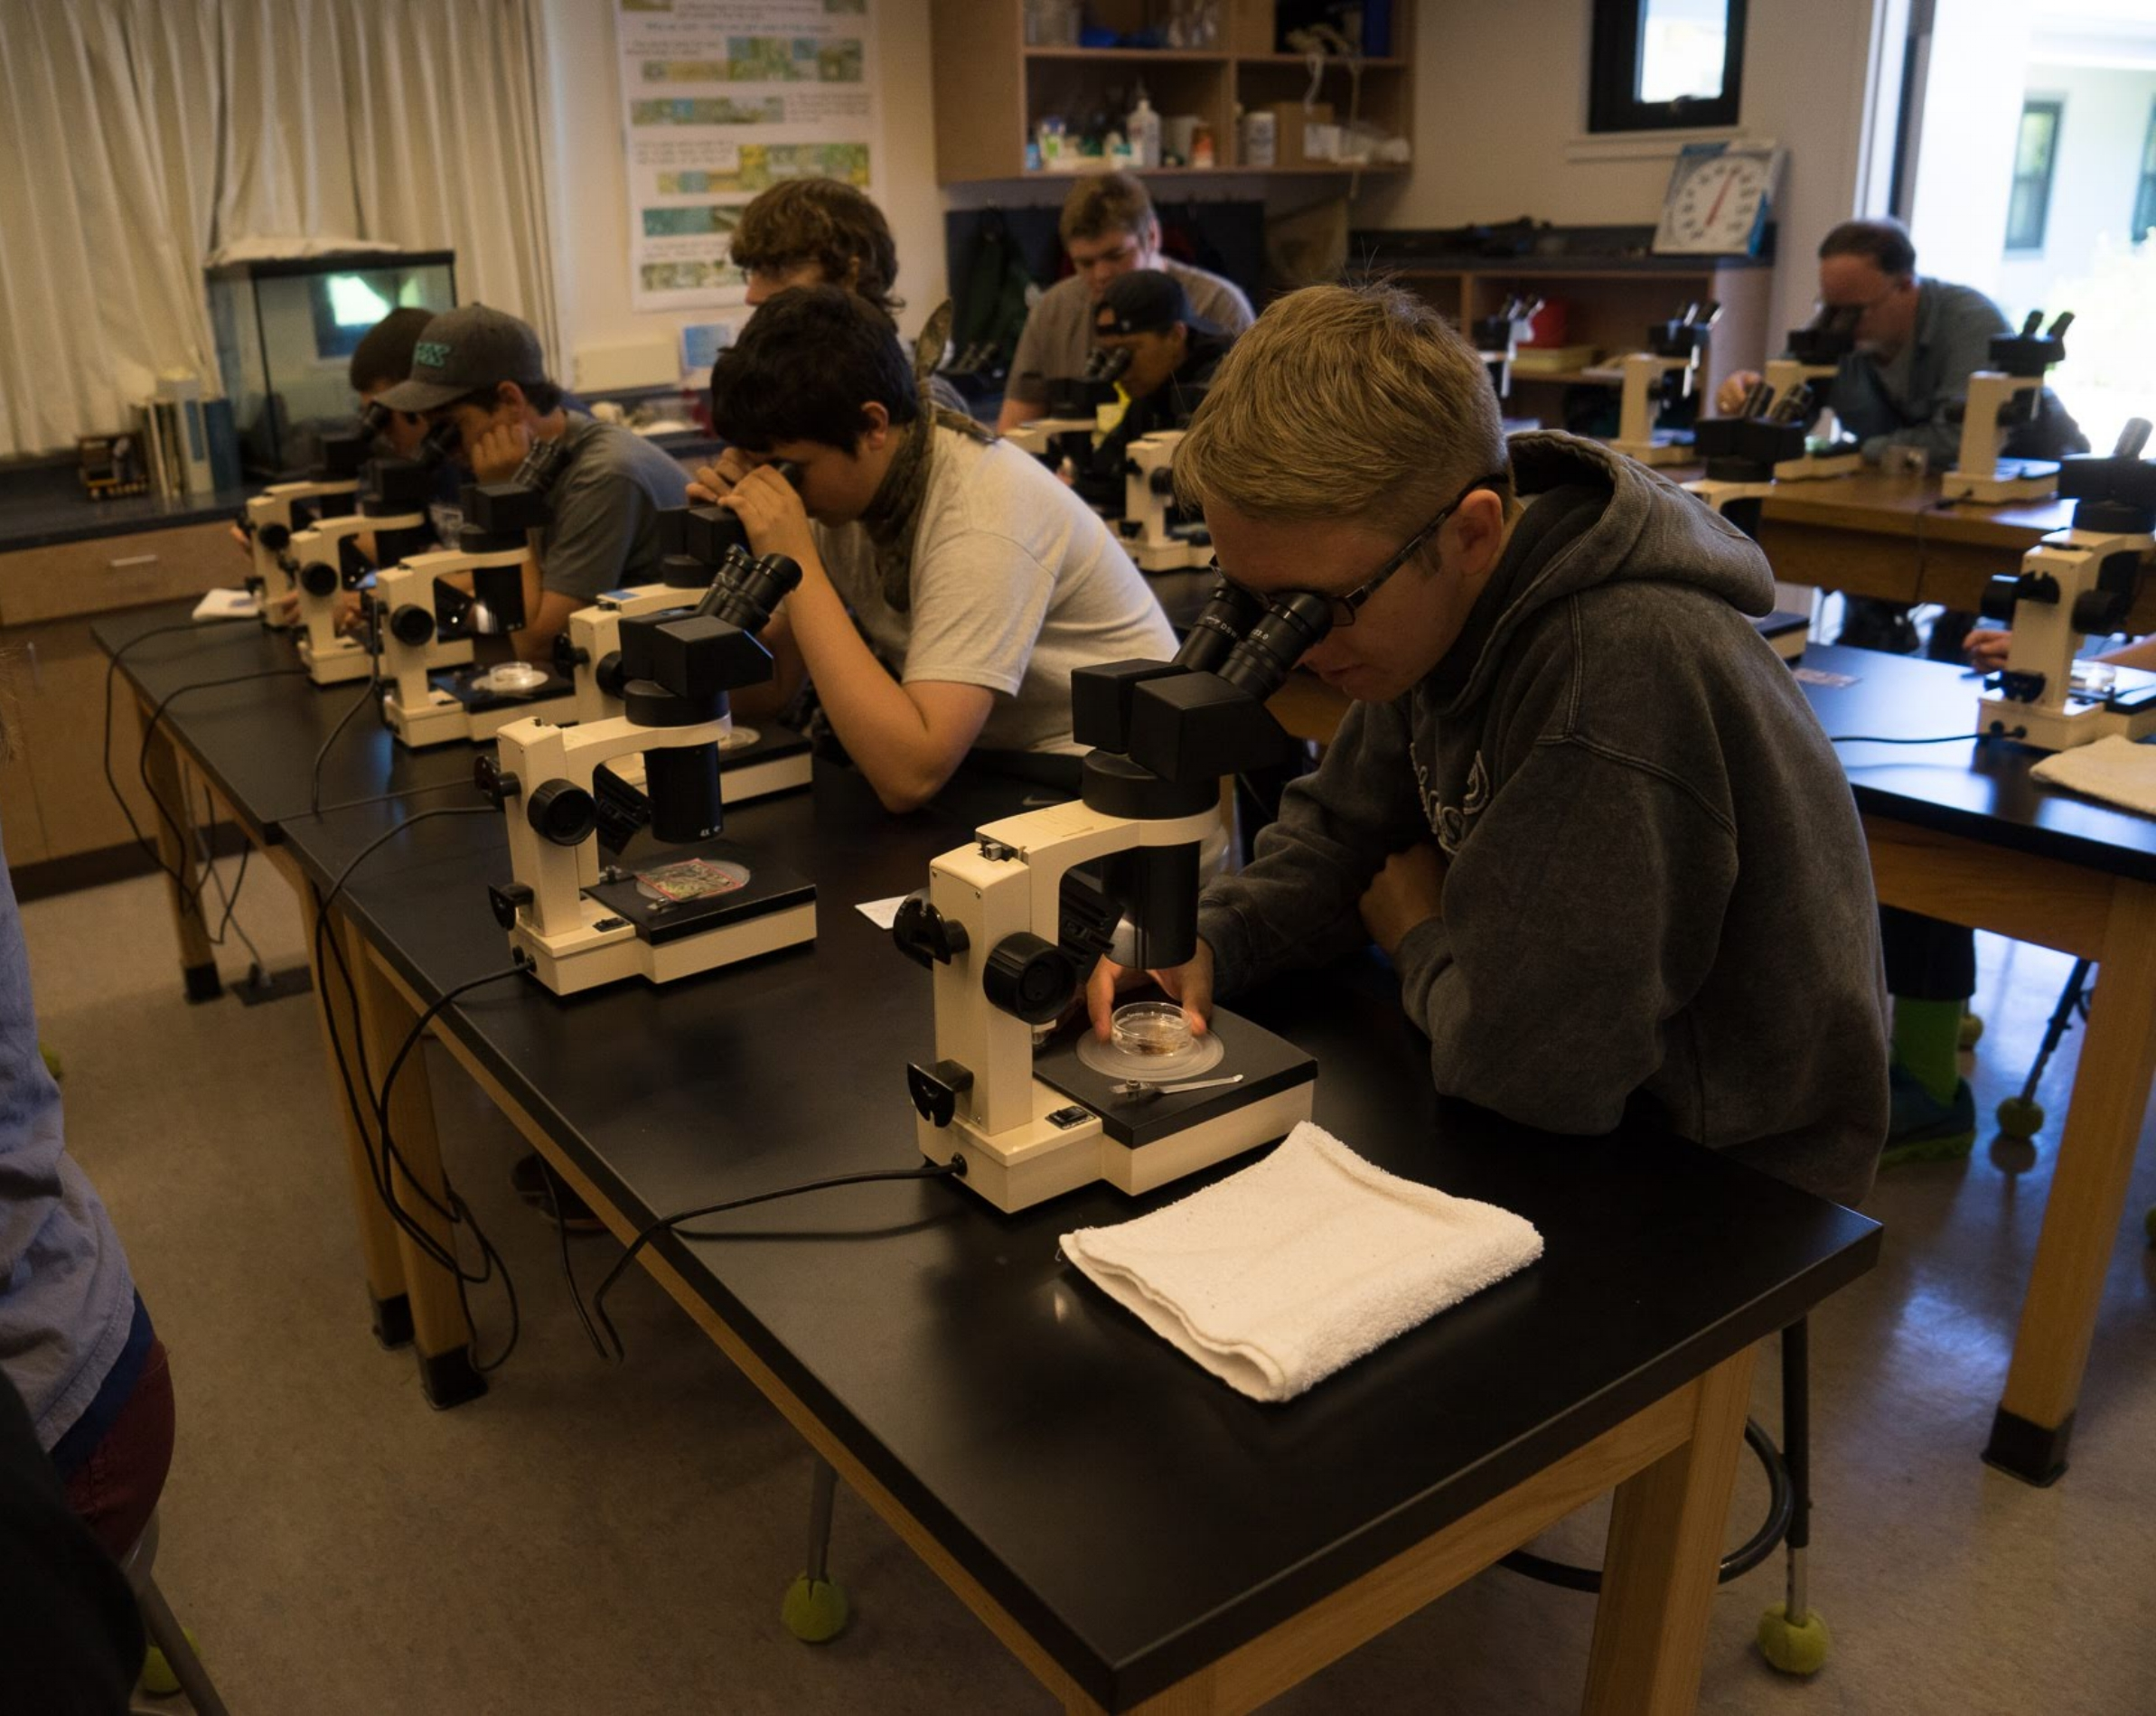 Students using microscopes during science class